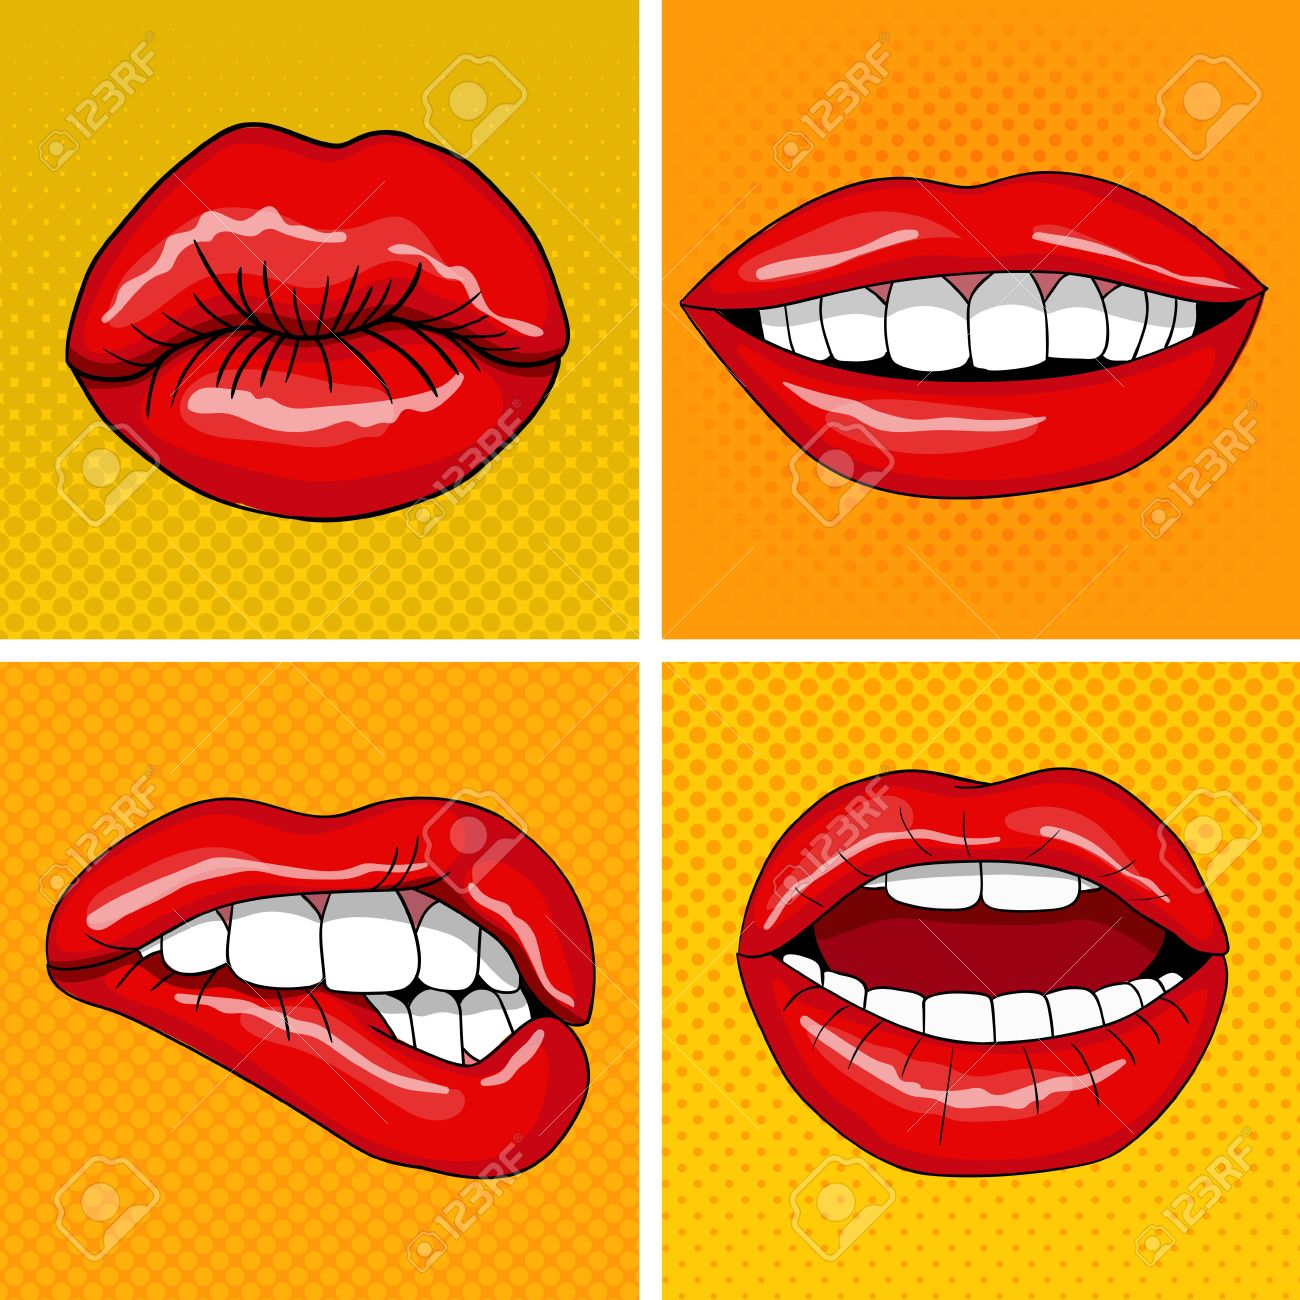 Lips Set In Retro Pop Art Style. Vector Illustration Royalty Free ...